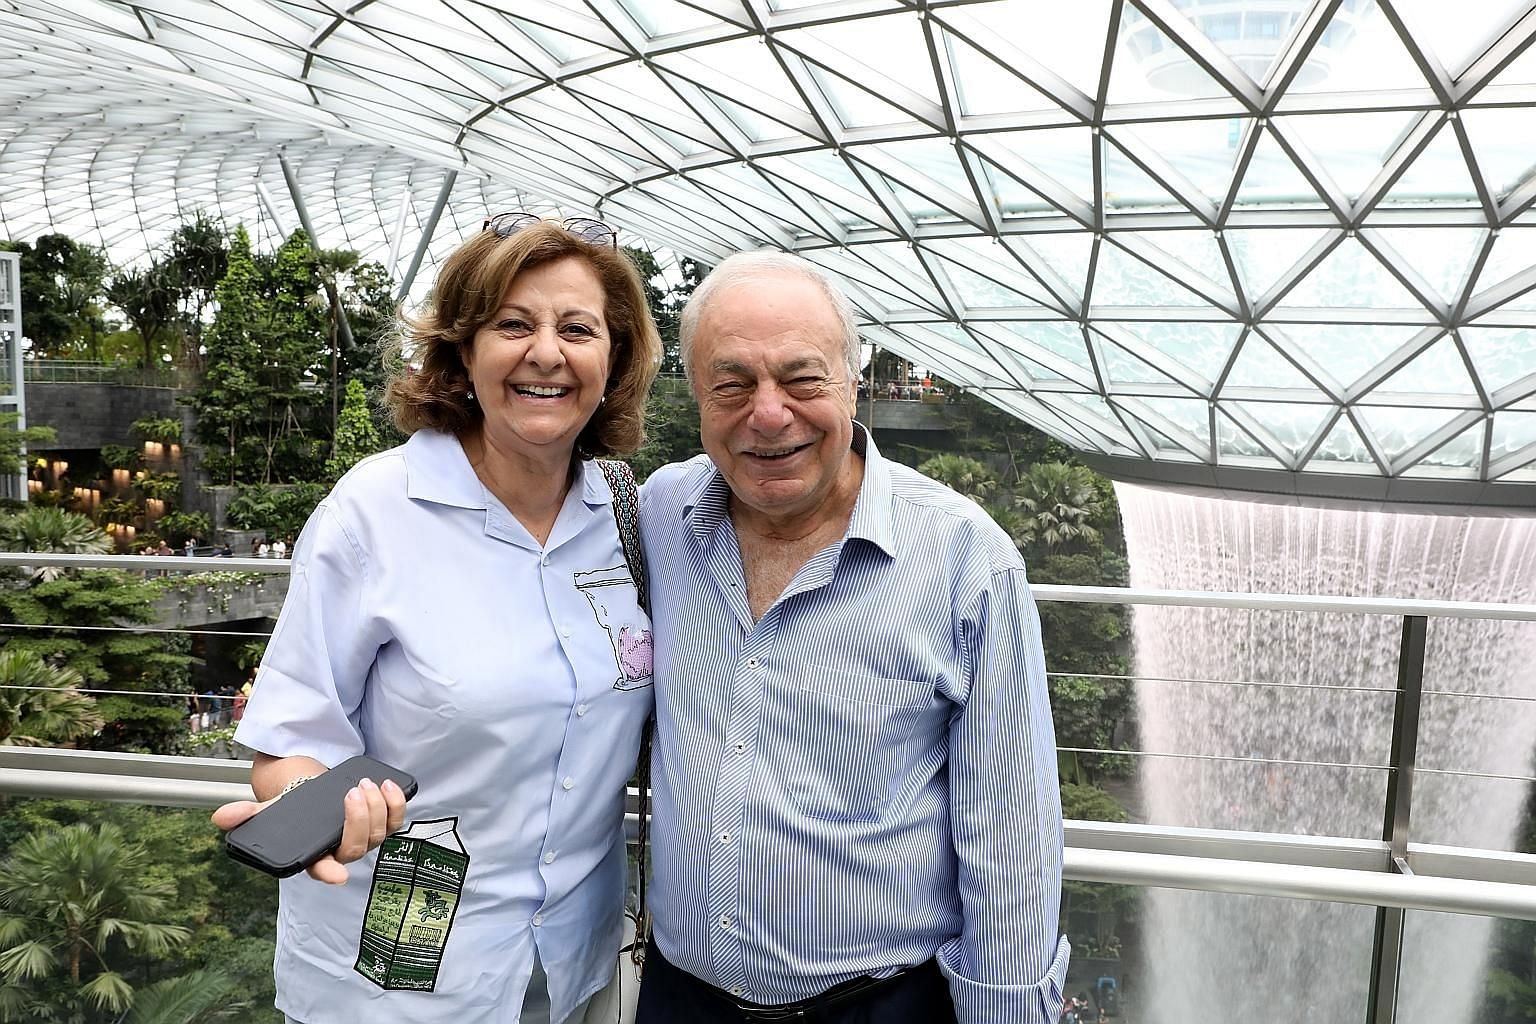 Singapore's honorary consul-general (HCG) in Jordan, Mr George Emile Ibrahim Haddad, and his wife Sherin visiting Jewel Changi Airport last week. Mr Haddad was here for the 8th HCG meeting.